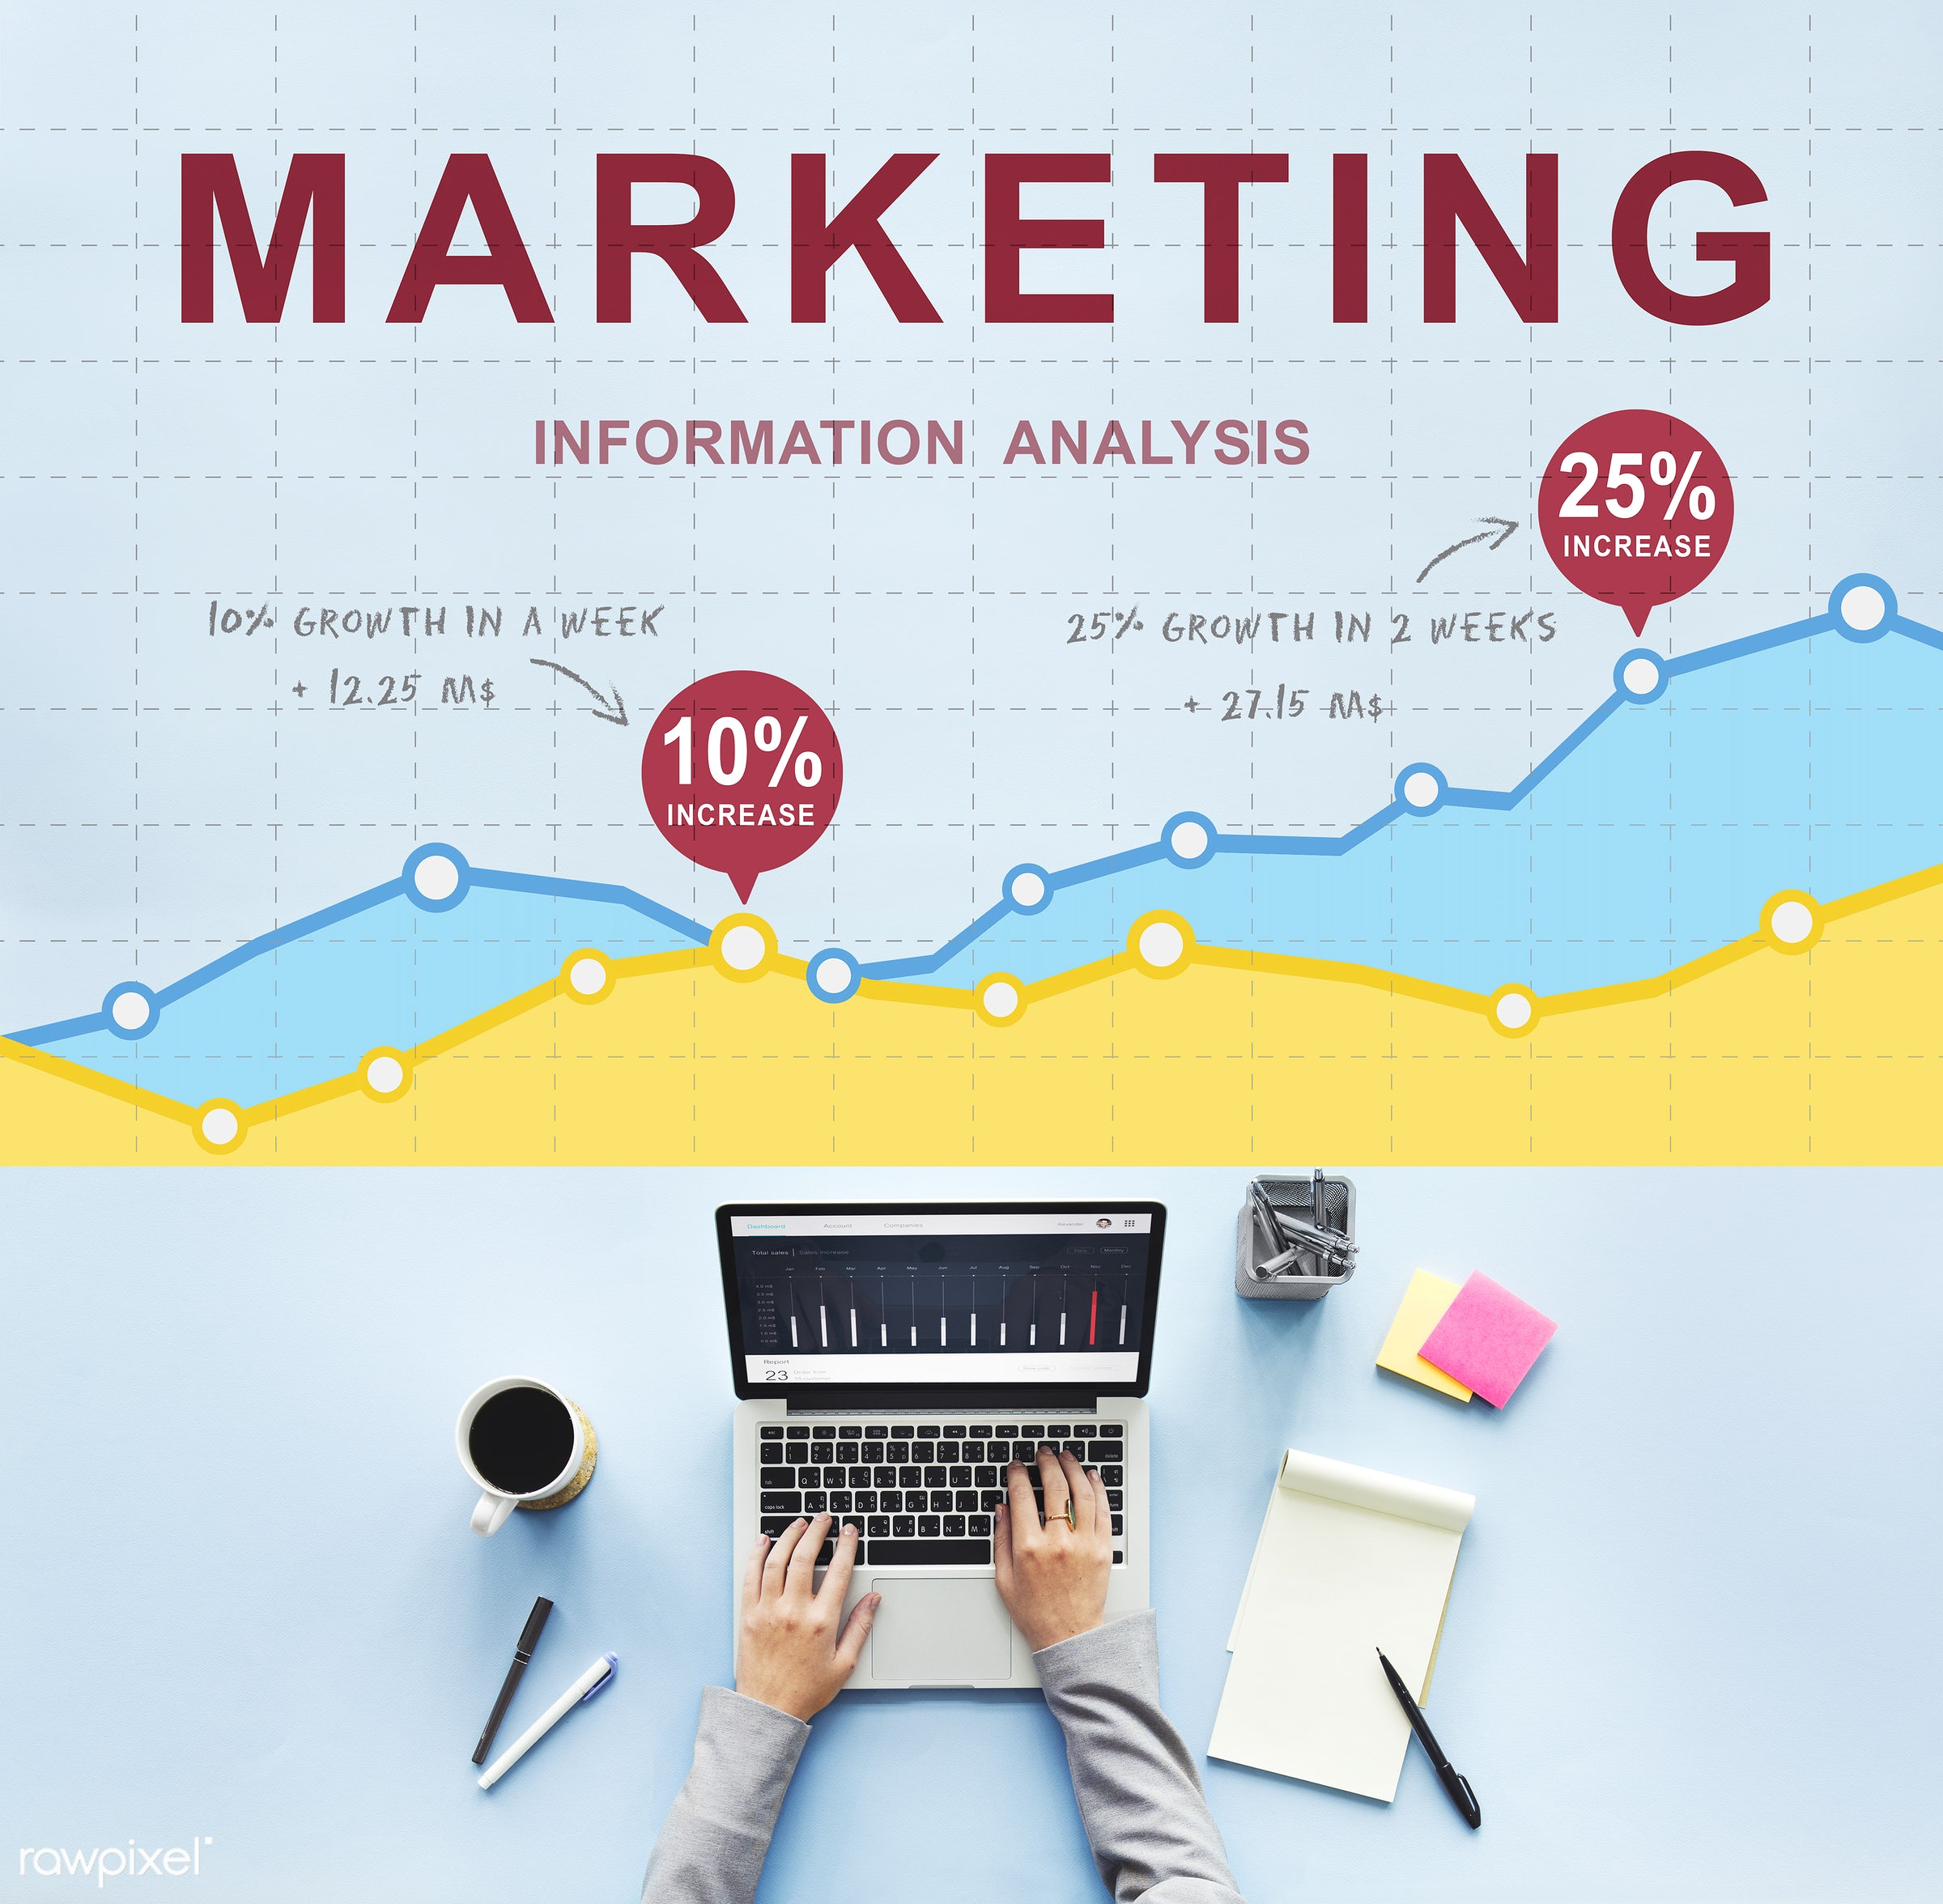 technology, marketing, digital marketing, growth, branding, brand, advertising, aerial view, analysis, business, business...